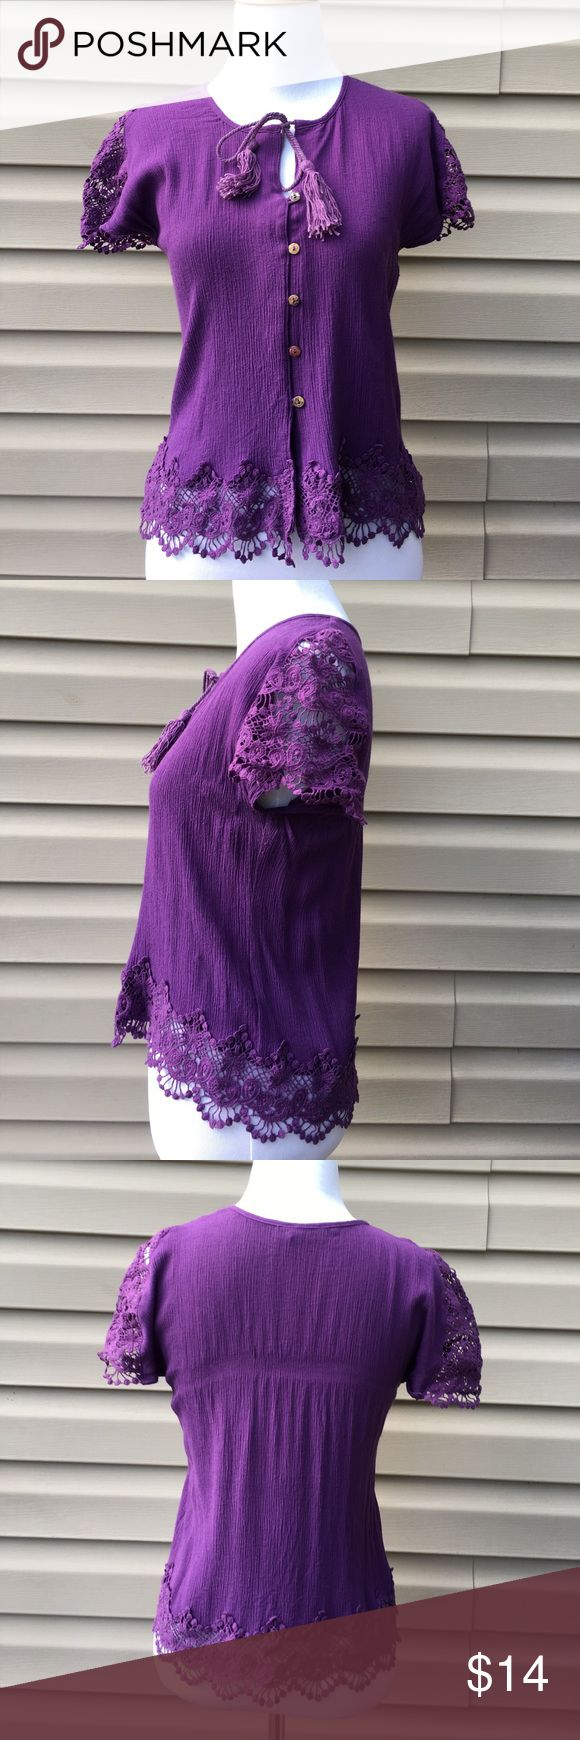 """TOBI women's purple short sleeve shirt Very nice purple button front top. Light gauzy material with crochet sleeves and hem, tassels tie at neck. No snags, stains, or holes. EUC 19""""W x 21""""L TOBI Tops Blouses"""